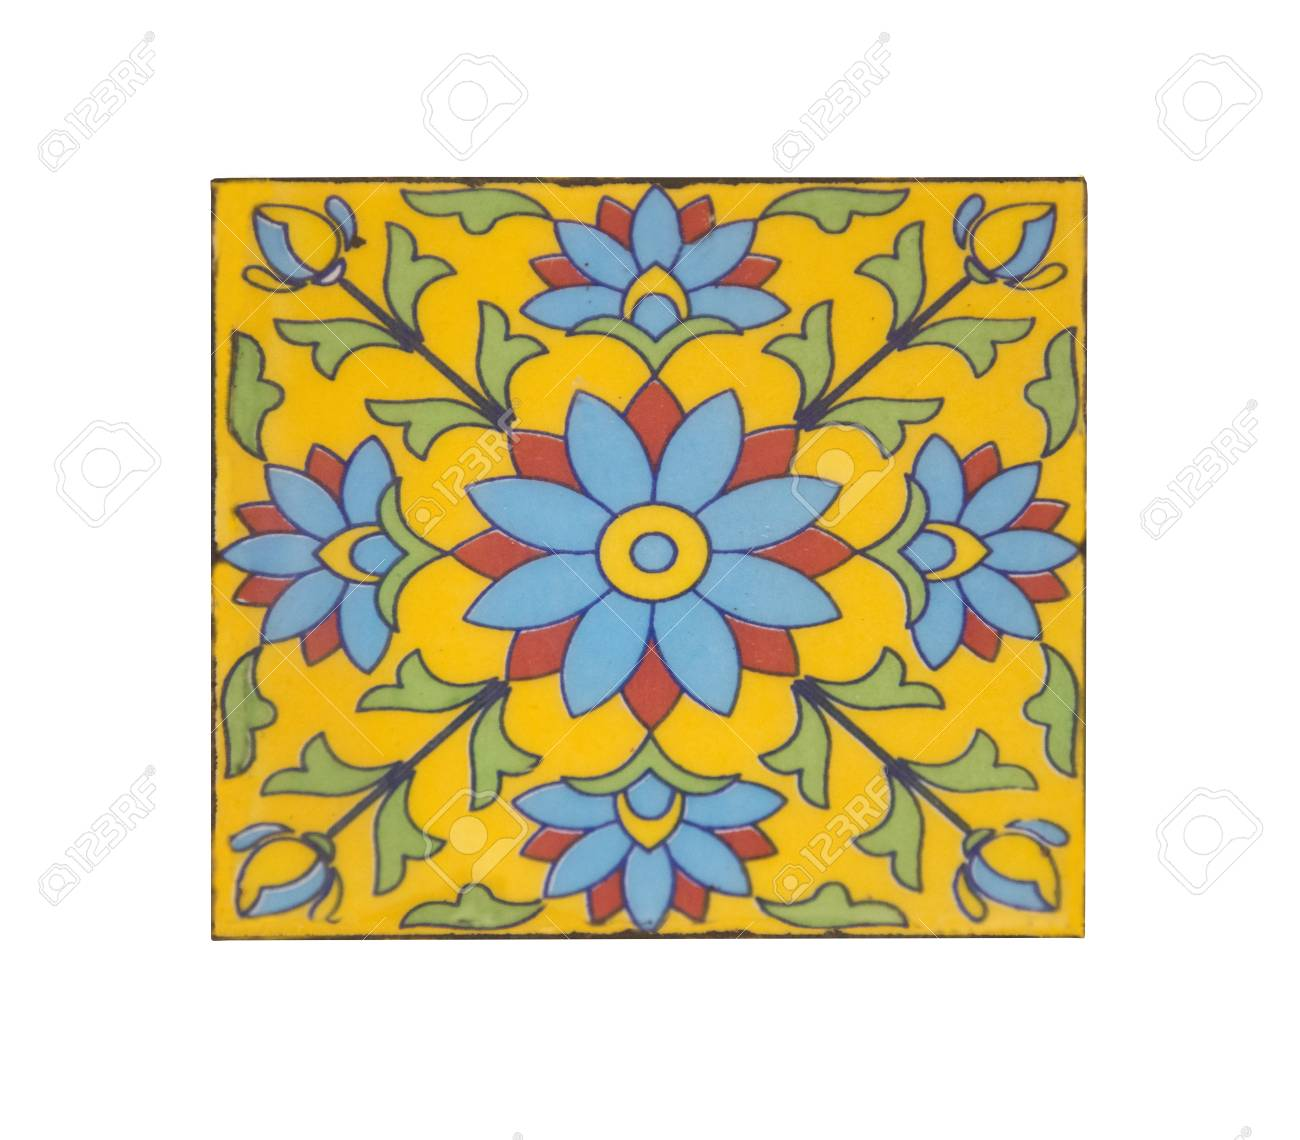 Moroccan Tile Pattern Background Colorful Vintage Ceramic Tiles Stock Photo Picture And Royalty Free Image Image 92551506